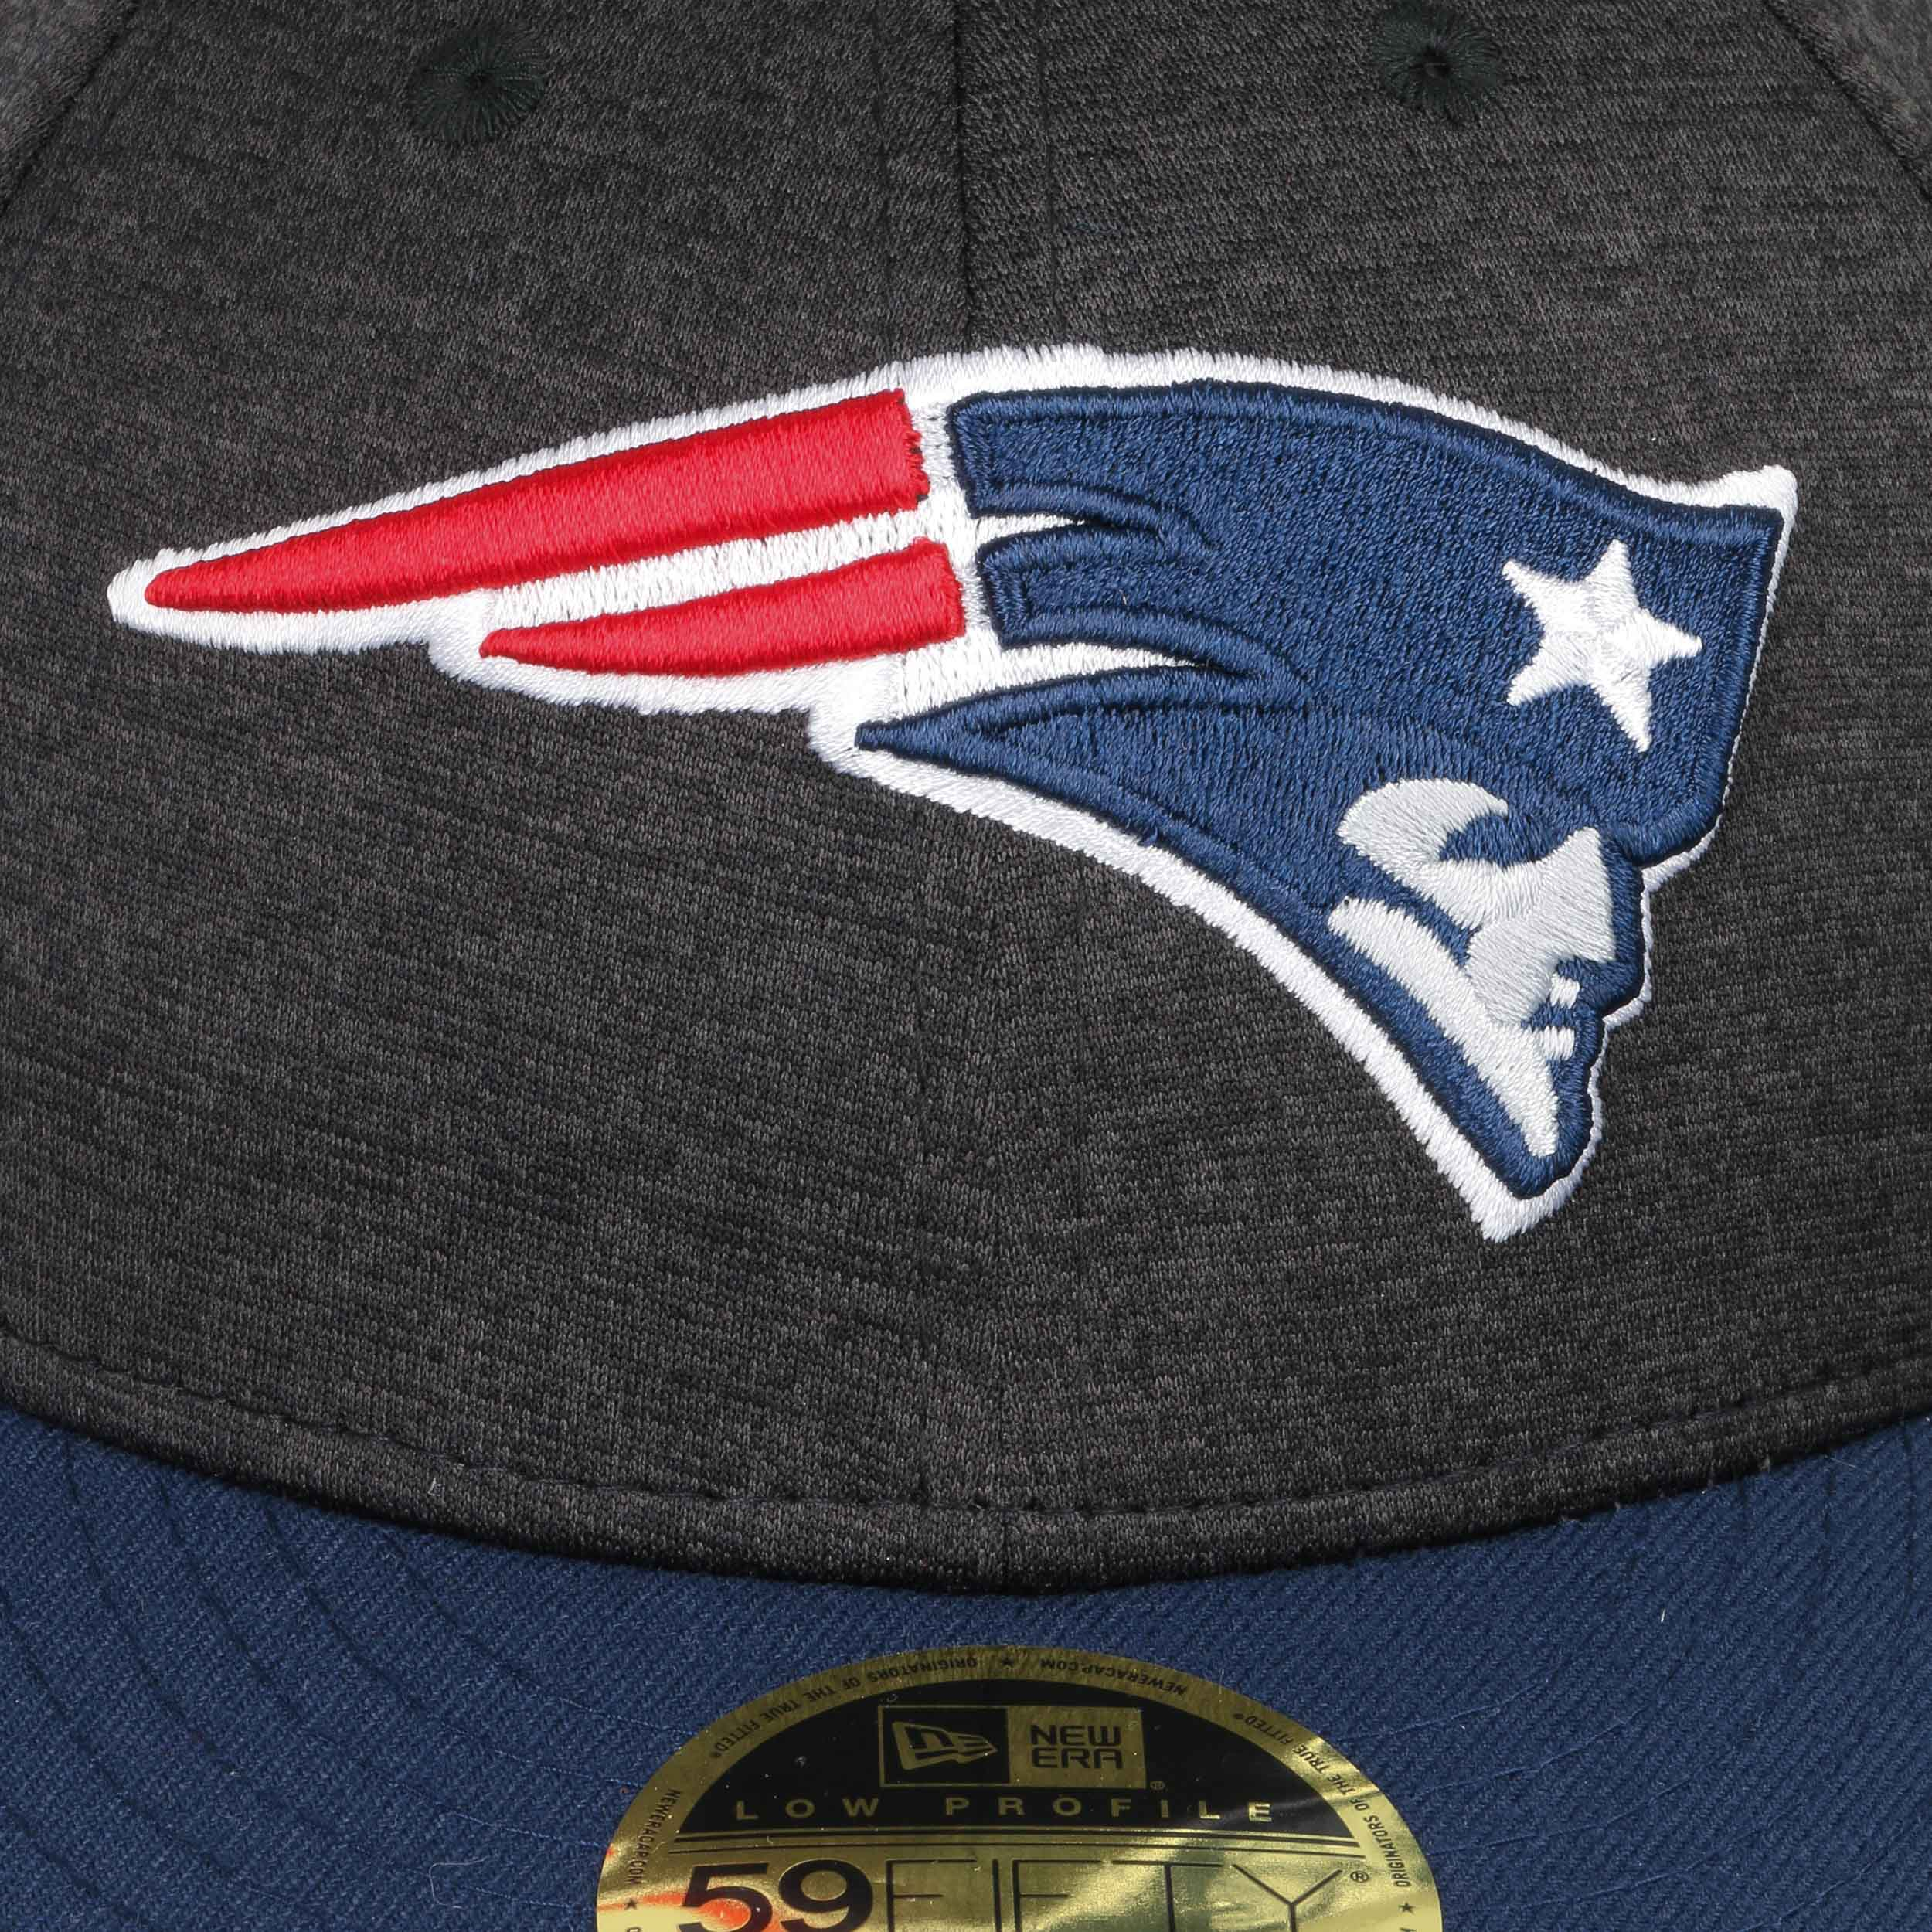 db1a008b ... 59Fifty Low Profile Tech Patriots Cap by New Era - dark grey 4 ...